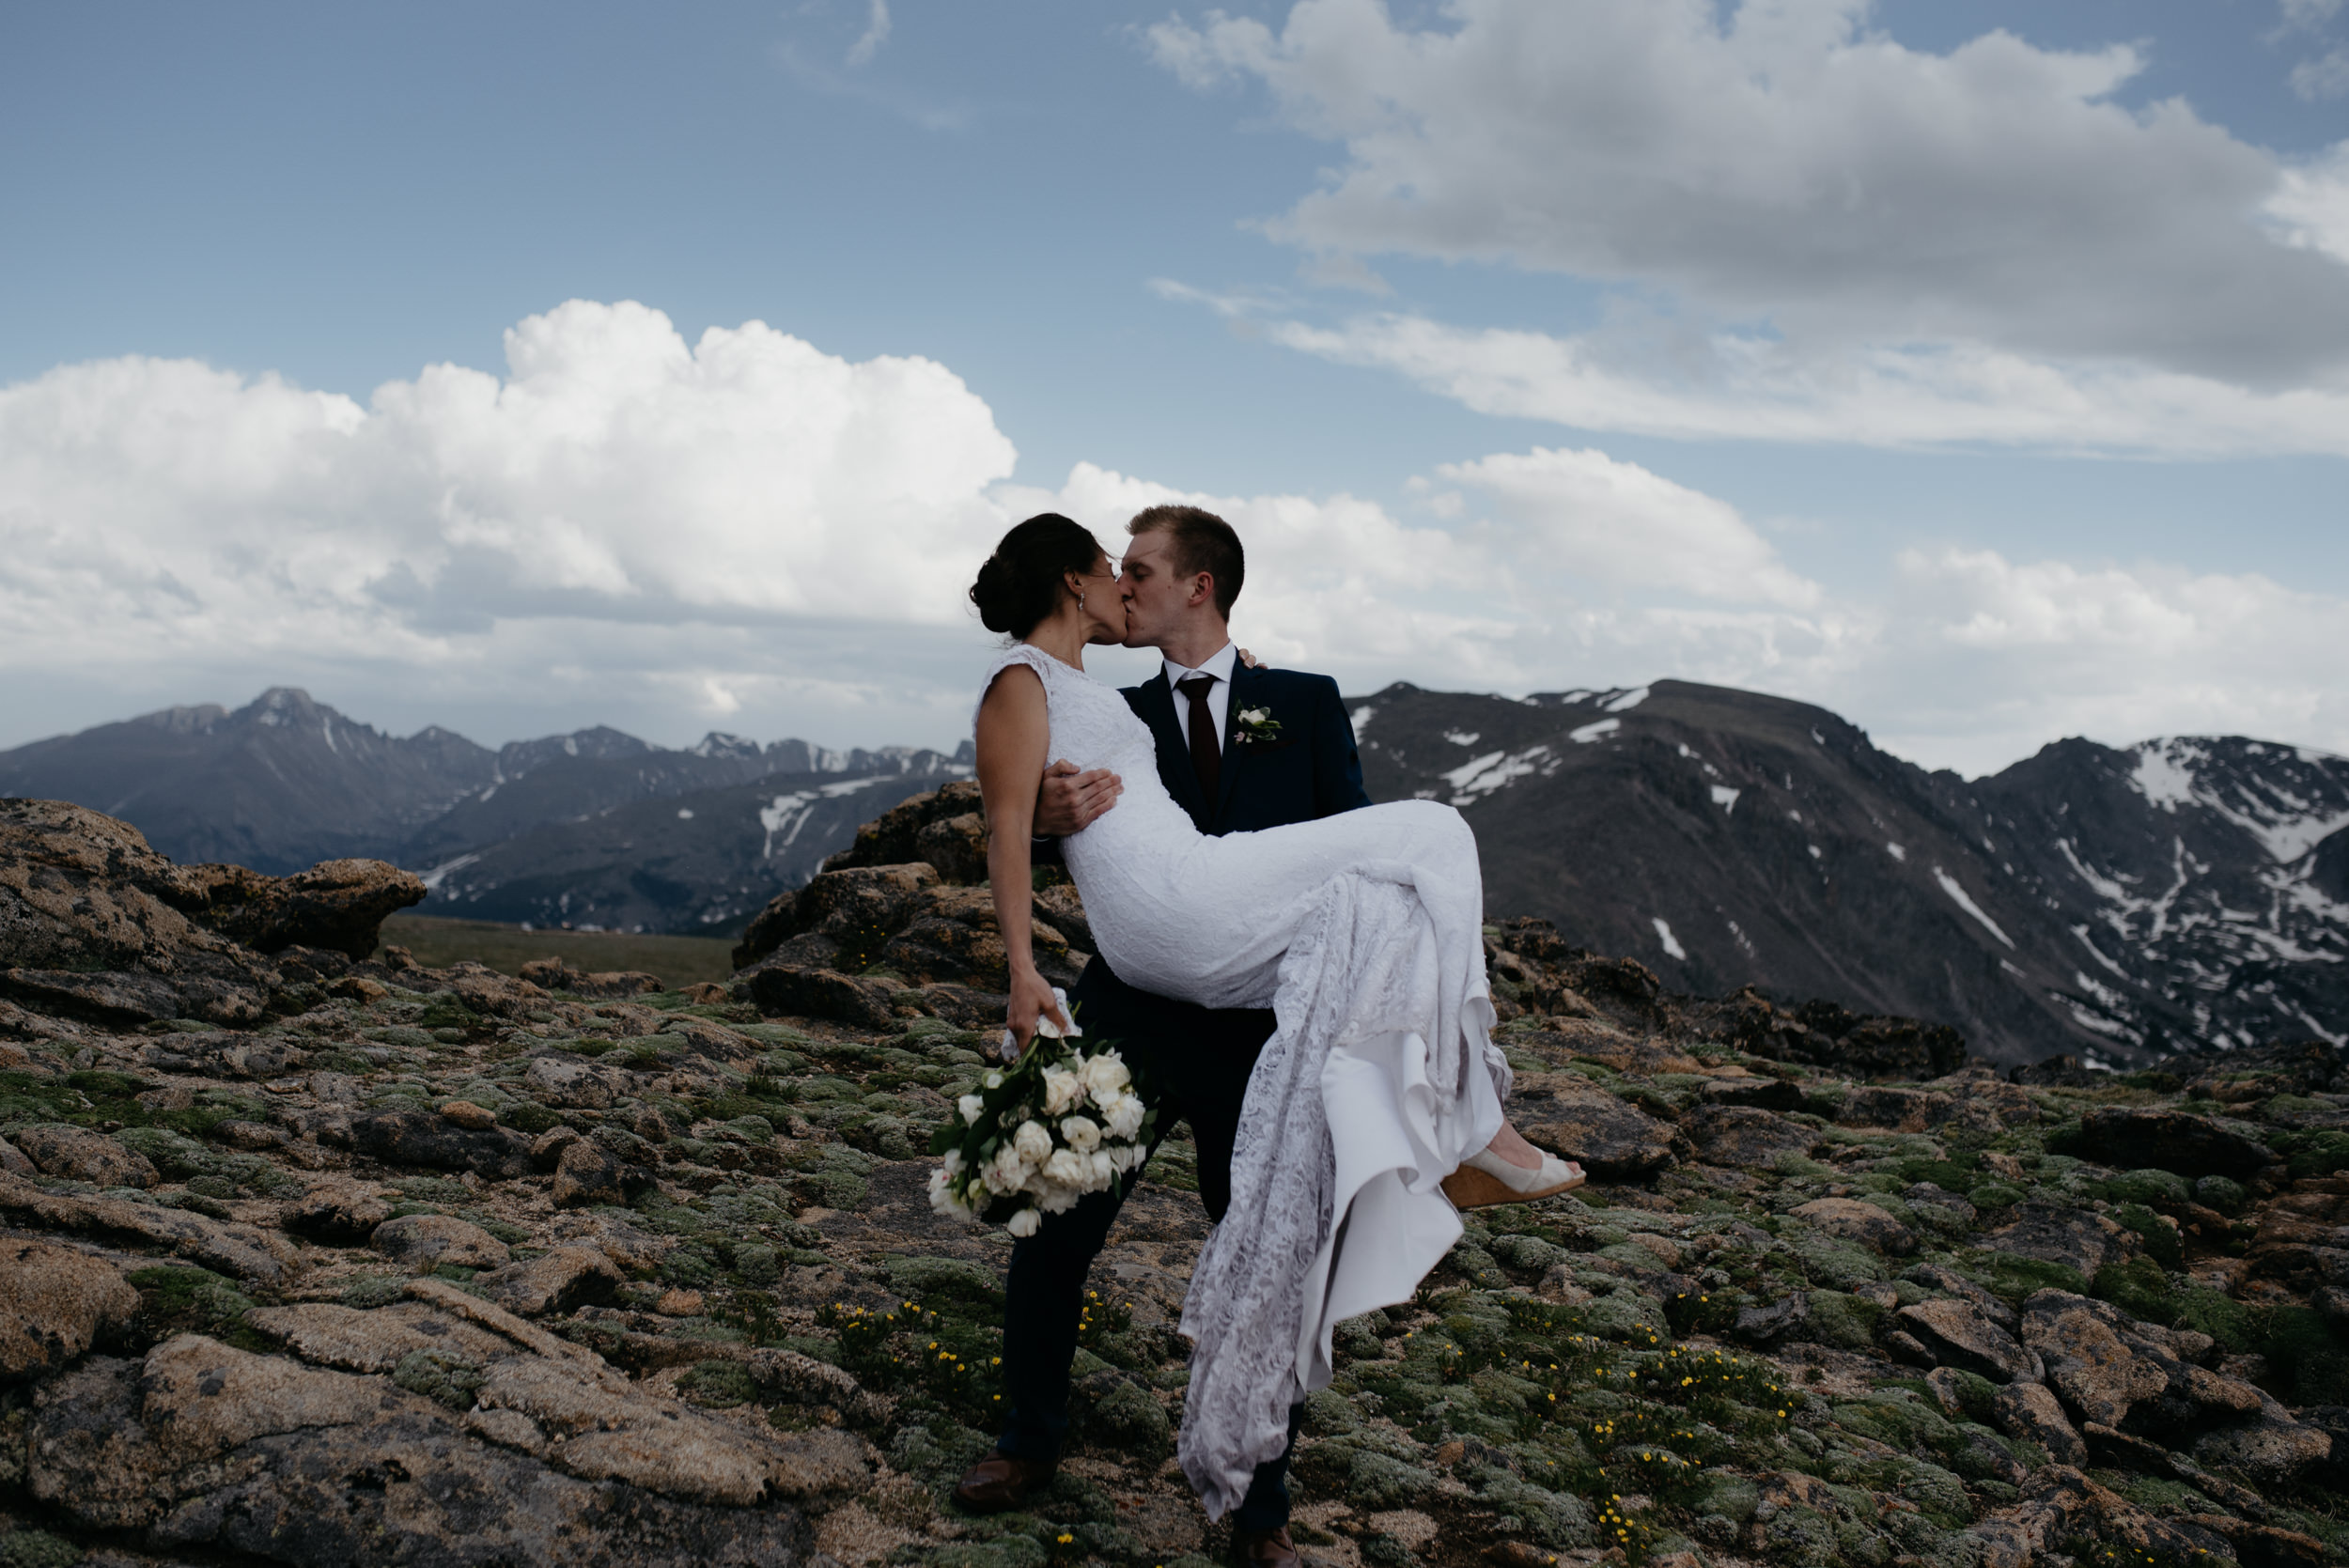 Colorado adventure elopement photographer. Trail Ridge Road elopement in Rocky Mountain National Park.